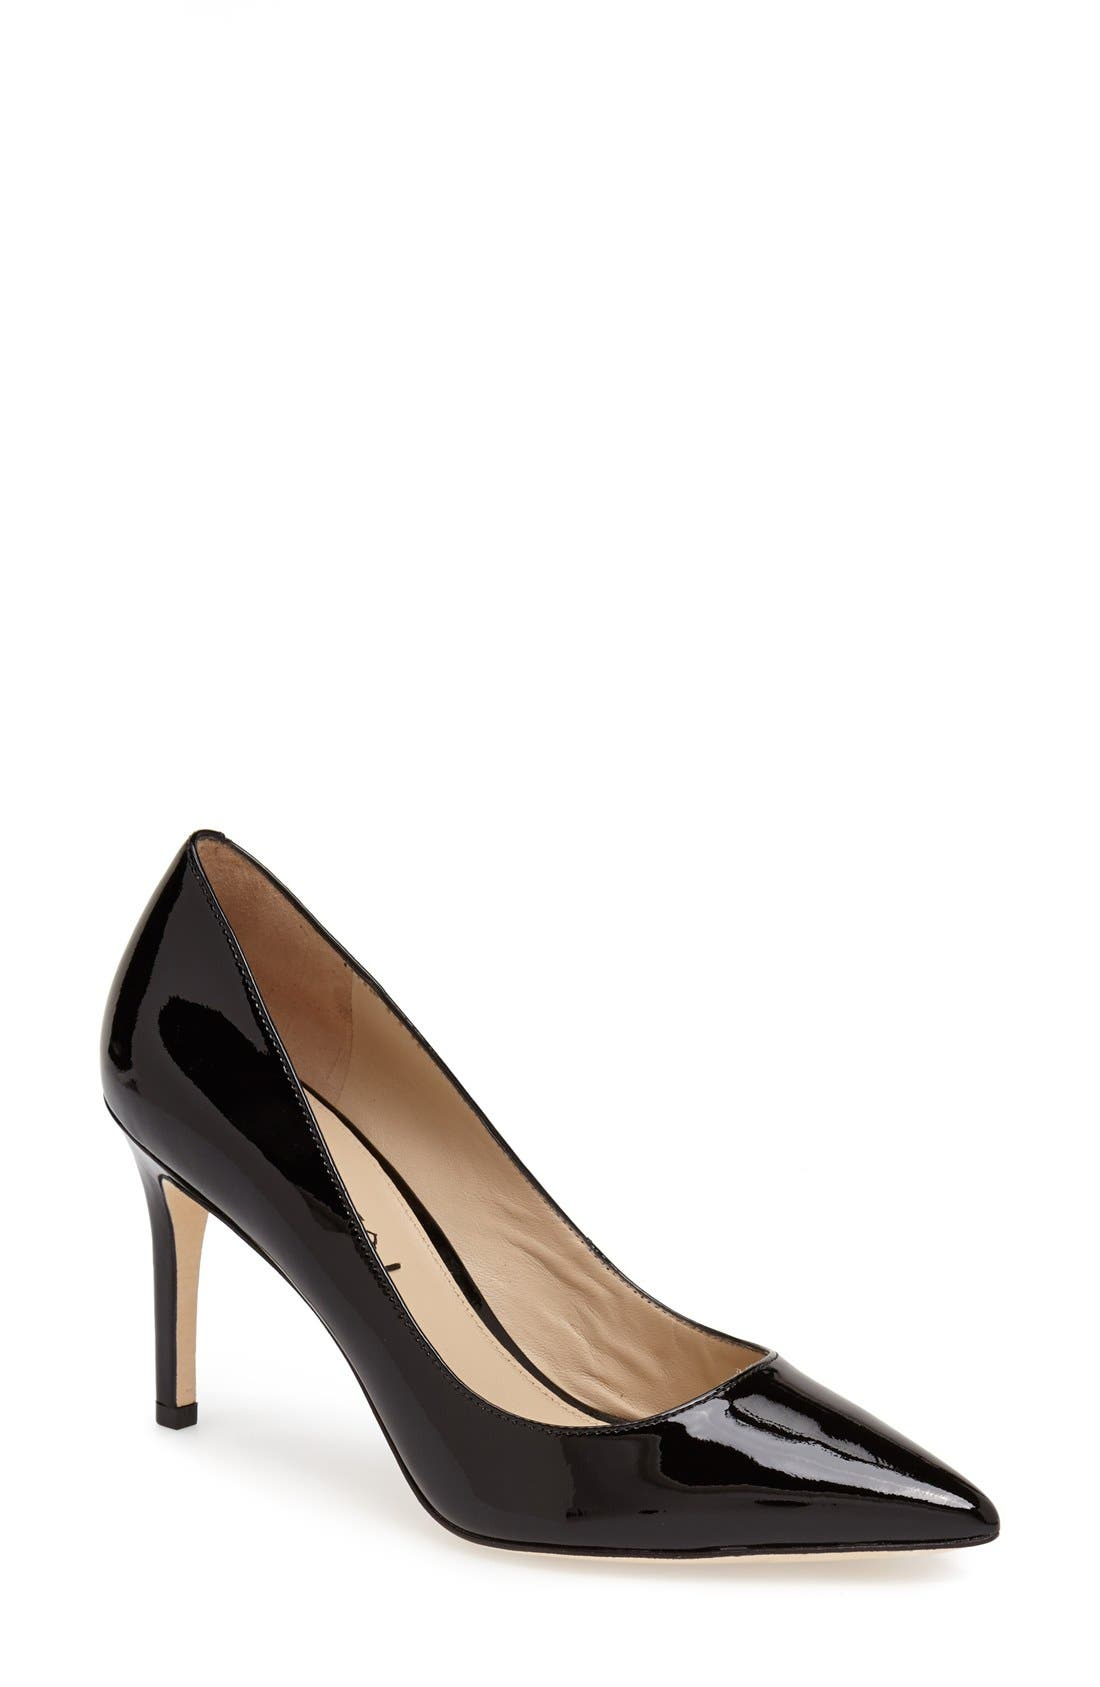 'Carola' Pointy Toe Pump, Main, color, 001